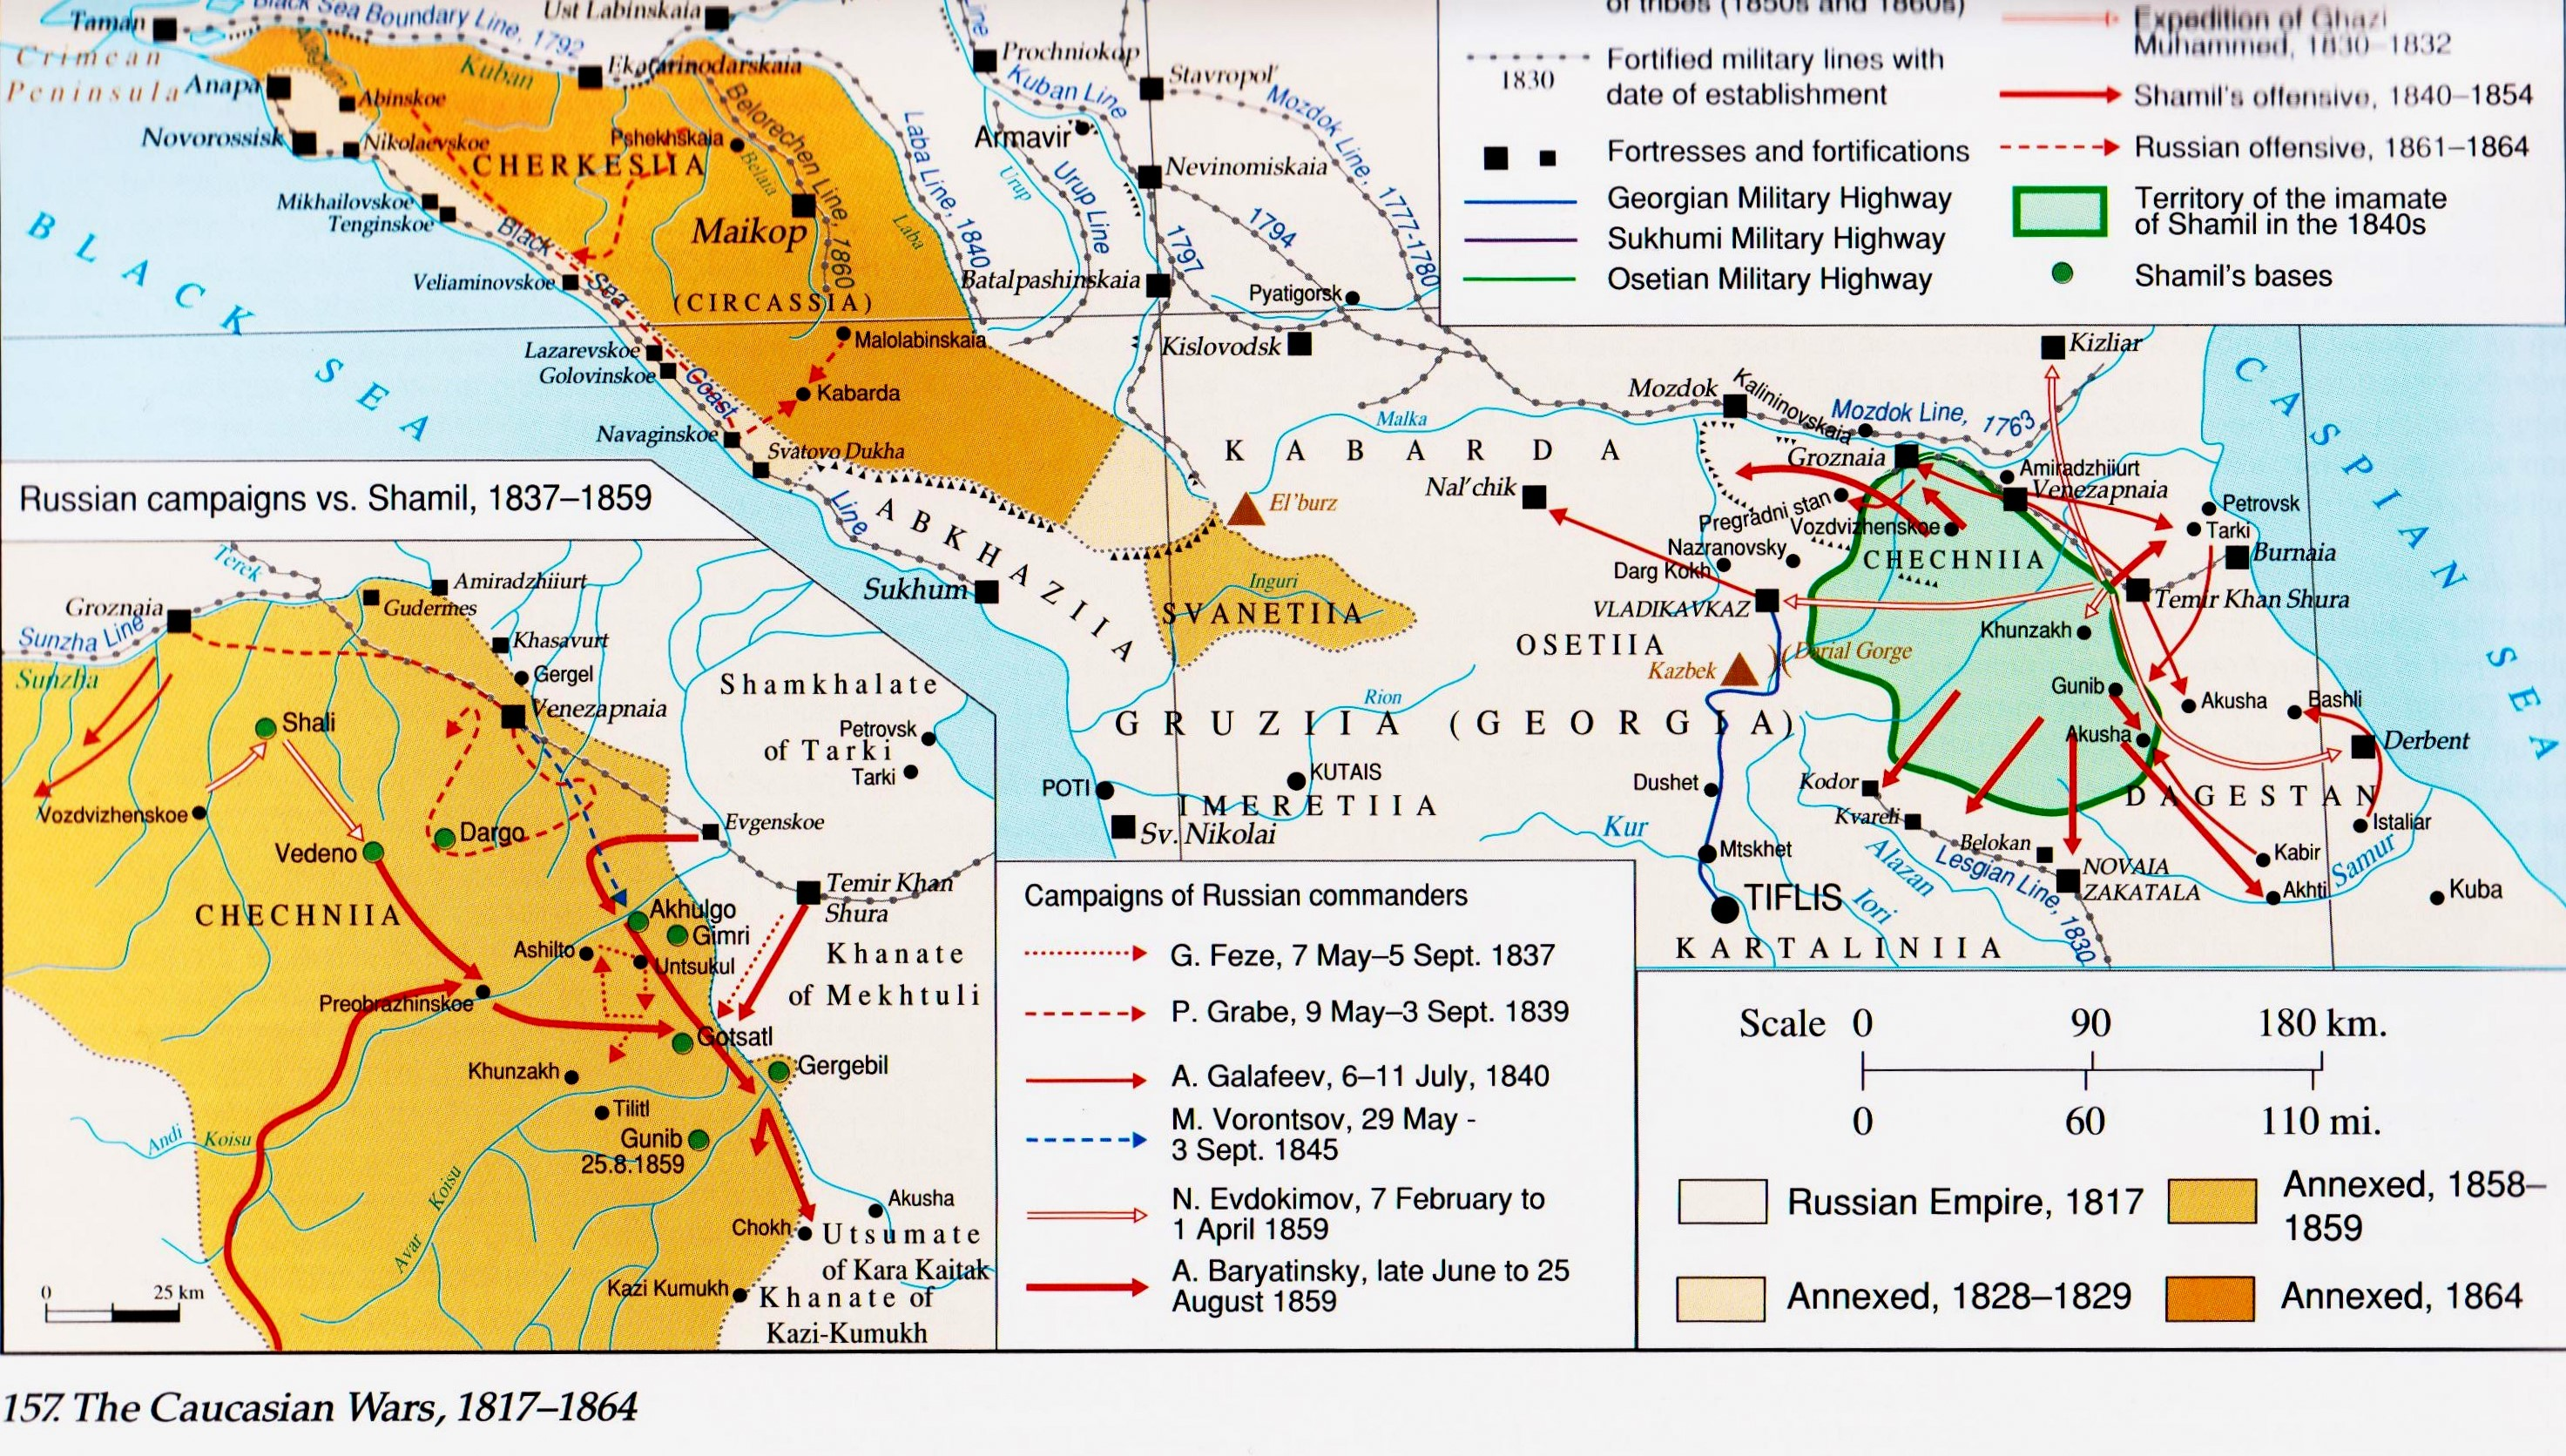 the history of the conflicts and wars of the south caucasus Myths and conflict in the south caucasus one of the main features of this conflict was the extent to which the war was - and continues to be and history textbooks in schools and how a nation's core narratives are communicated to children at an early age.